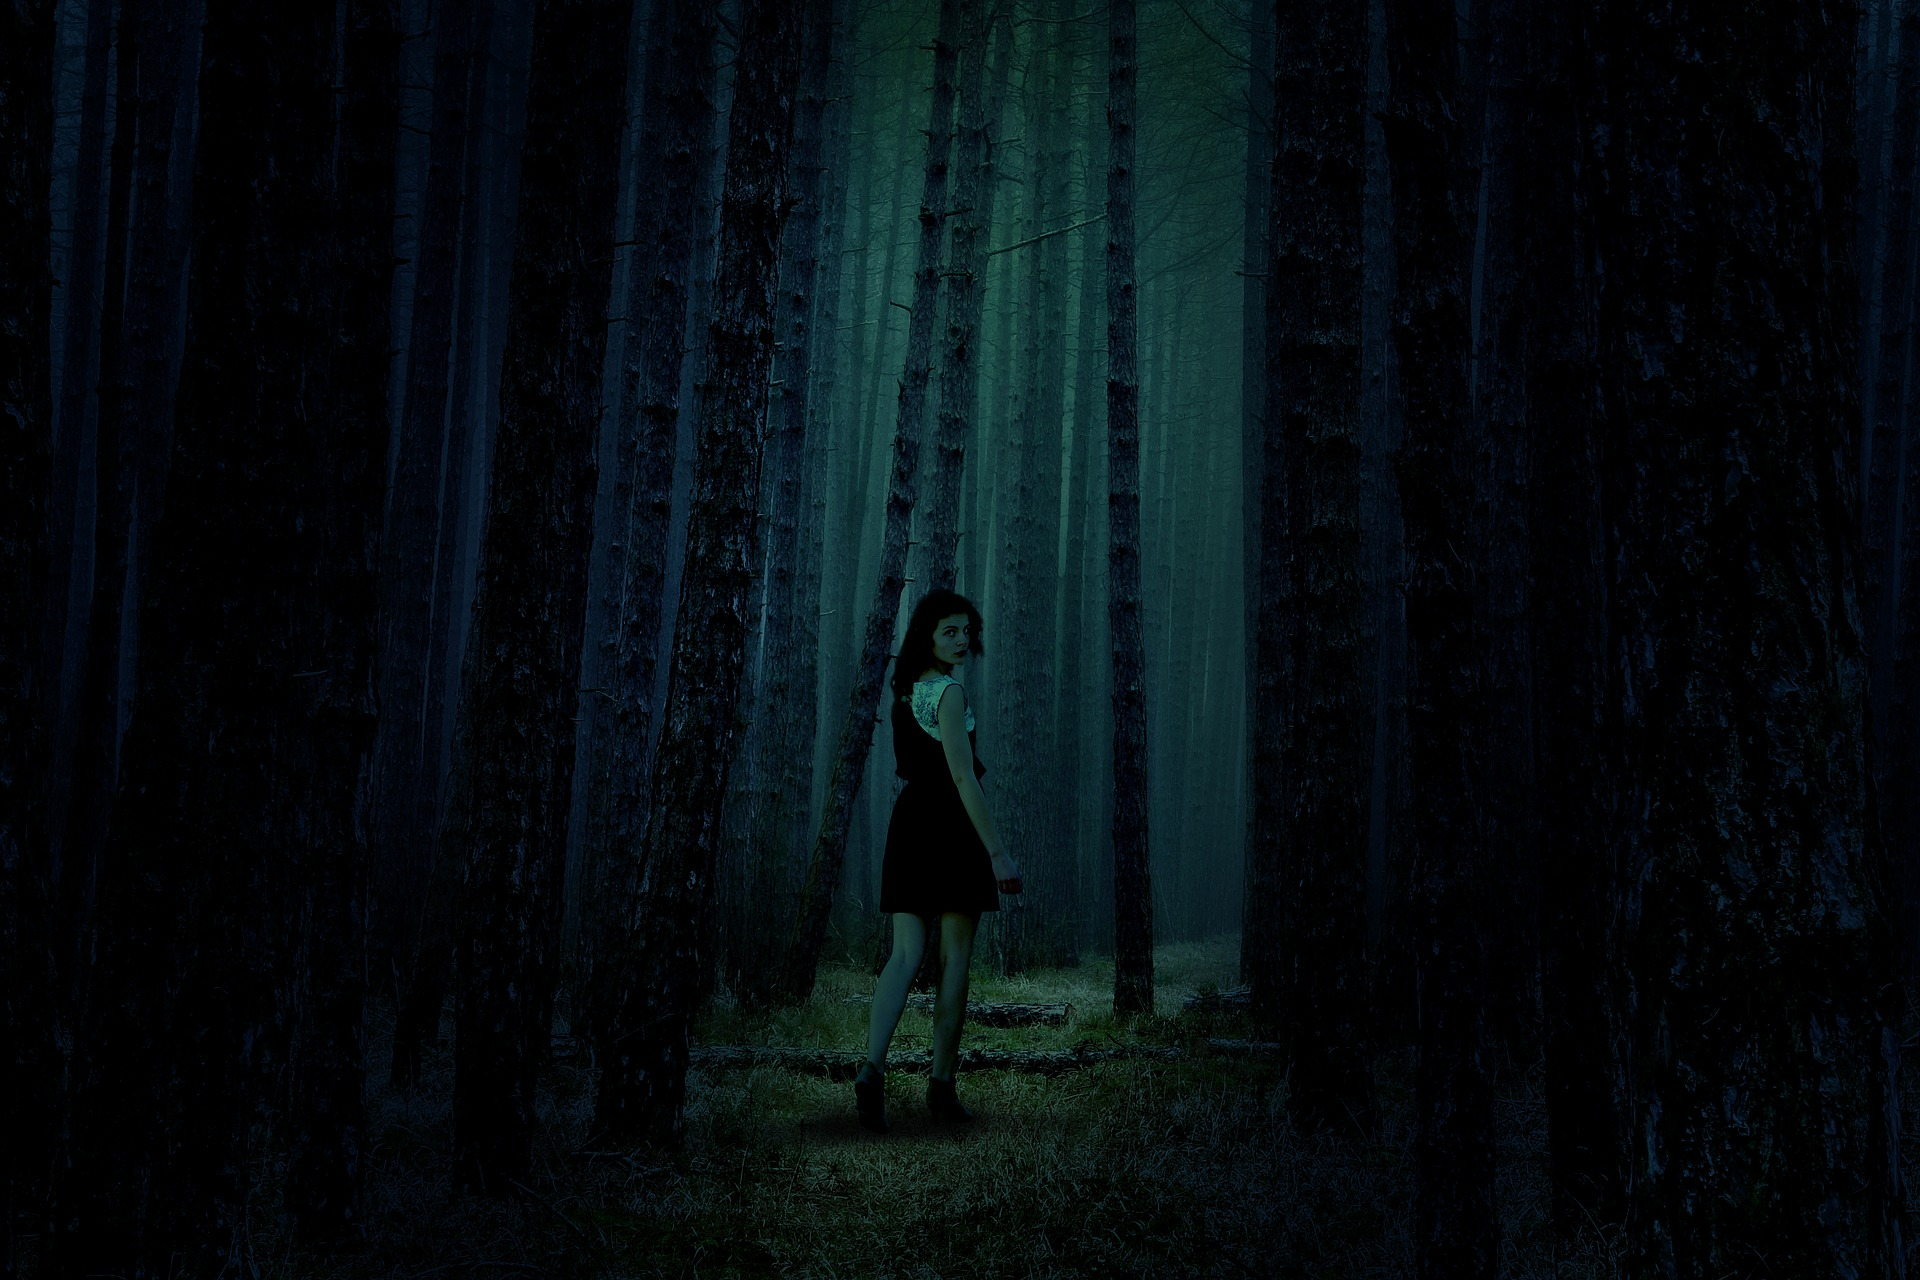 Lillian Carney- Disappeared in the woods